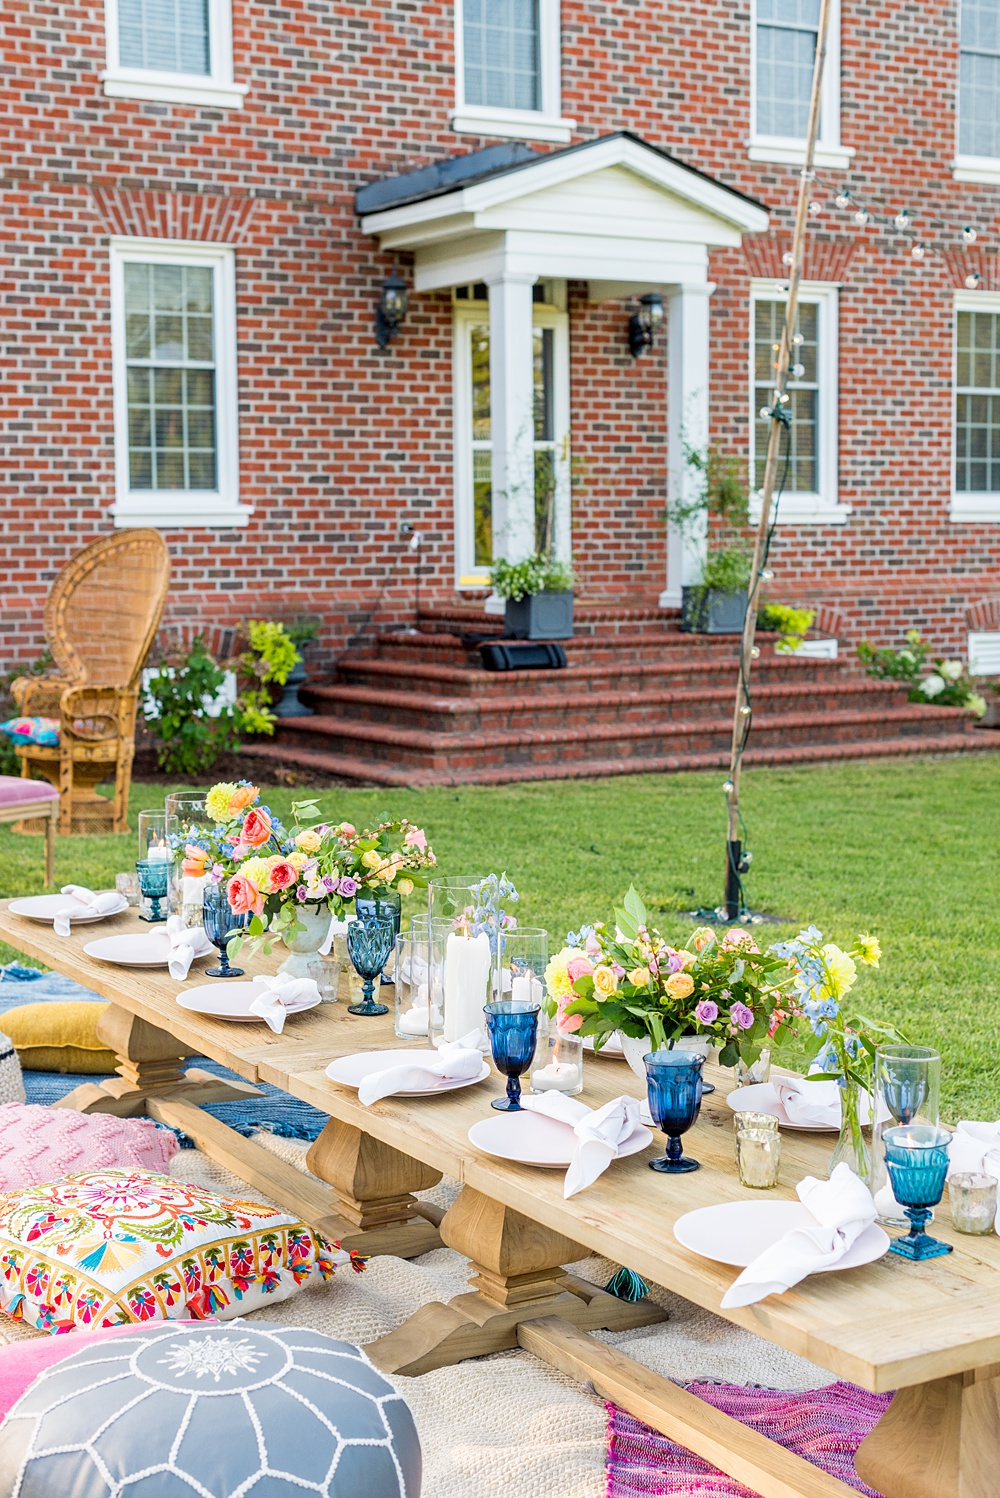 Step inside this colorful outdoor bohemian thirtieth birthday party. Full of color, lush garden flowers, and the yummiest vegan unicorn confetti cakes you ever did find! Mikkel Paige Photography #gardenparty #birthdayparty #bohemianparty #unicornparty #styledshoot #backyardparty #flowers | glitterinc.com | @glitterinc